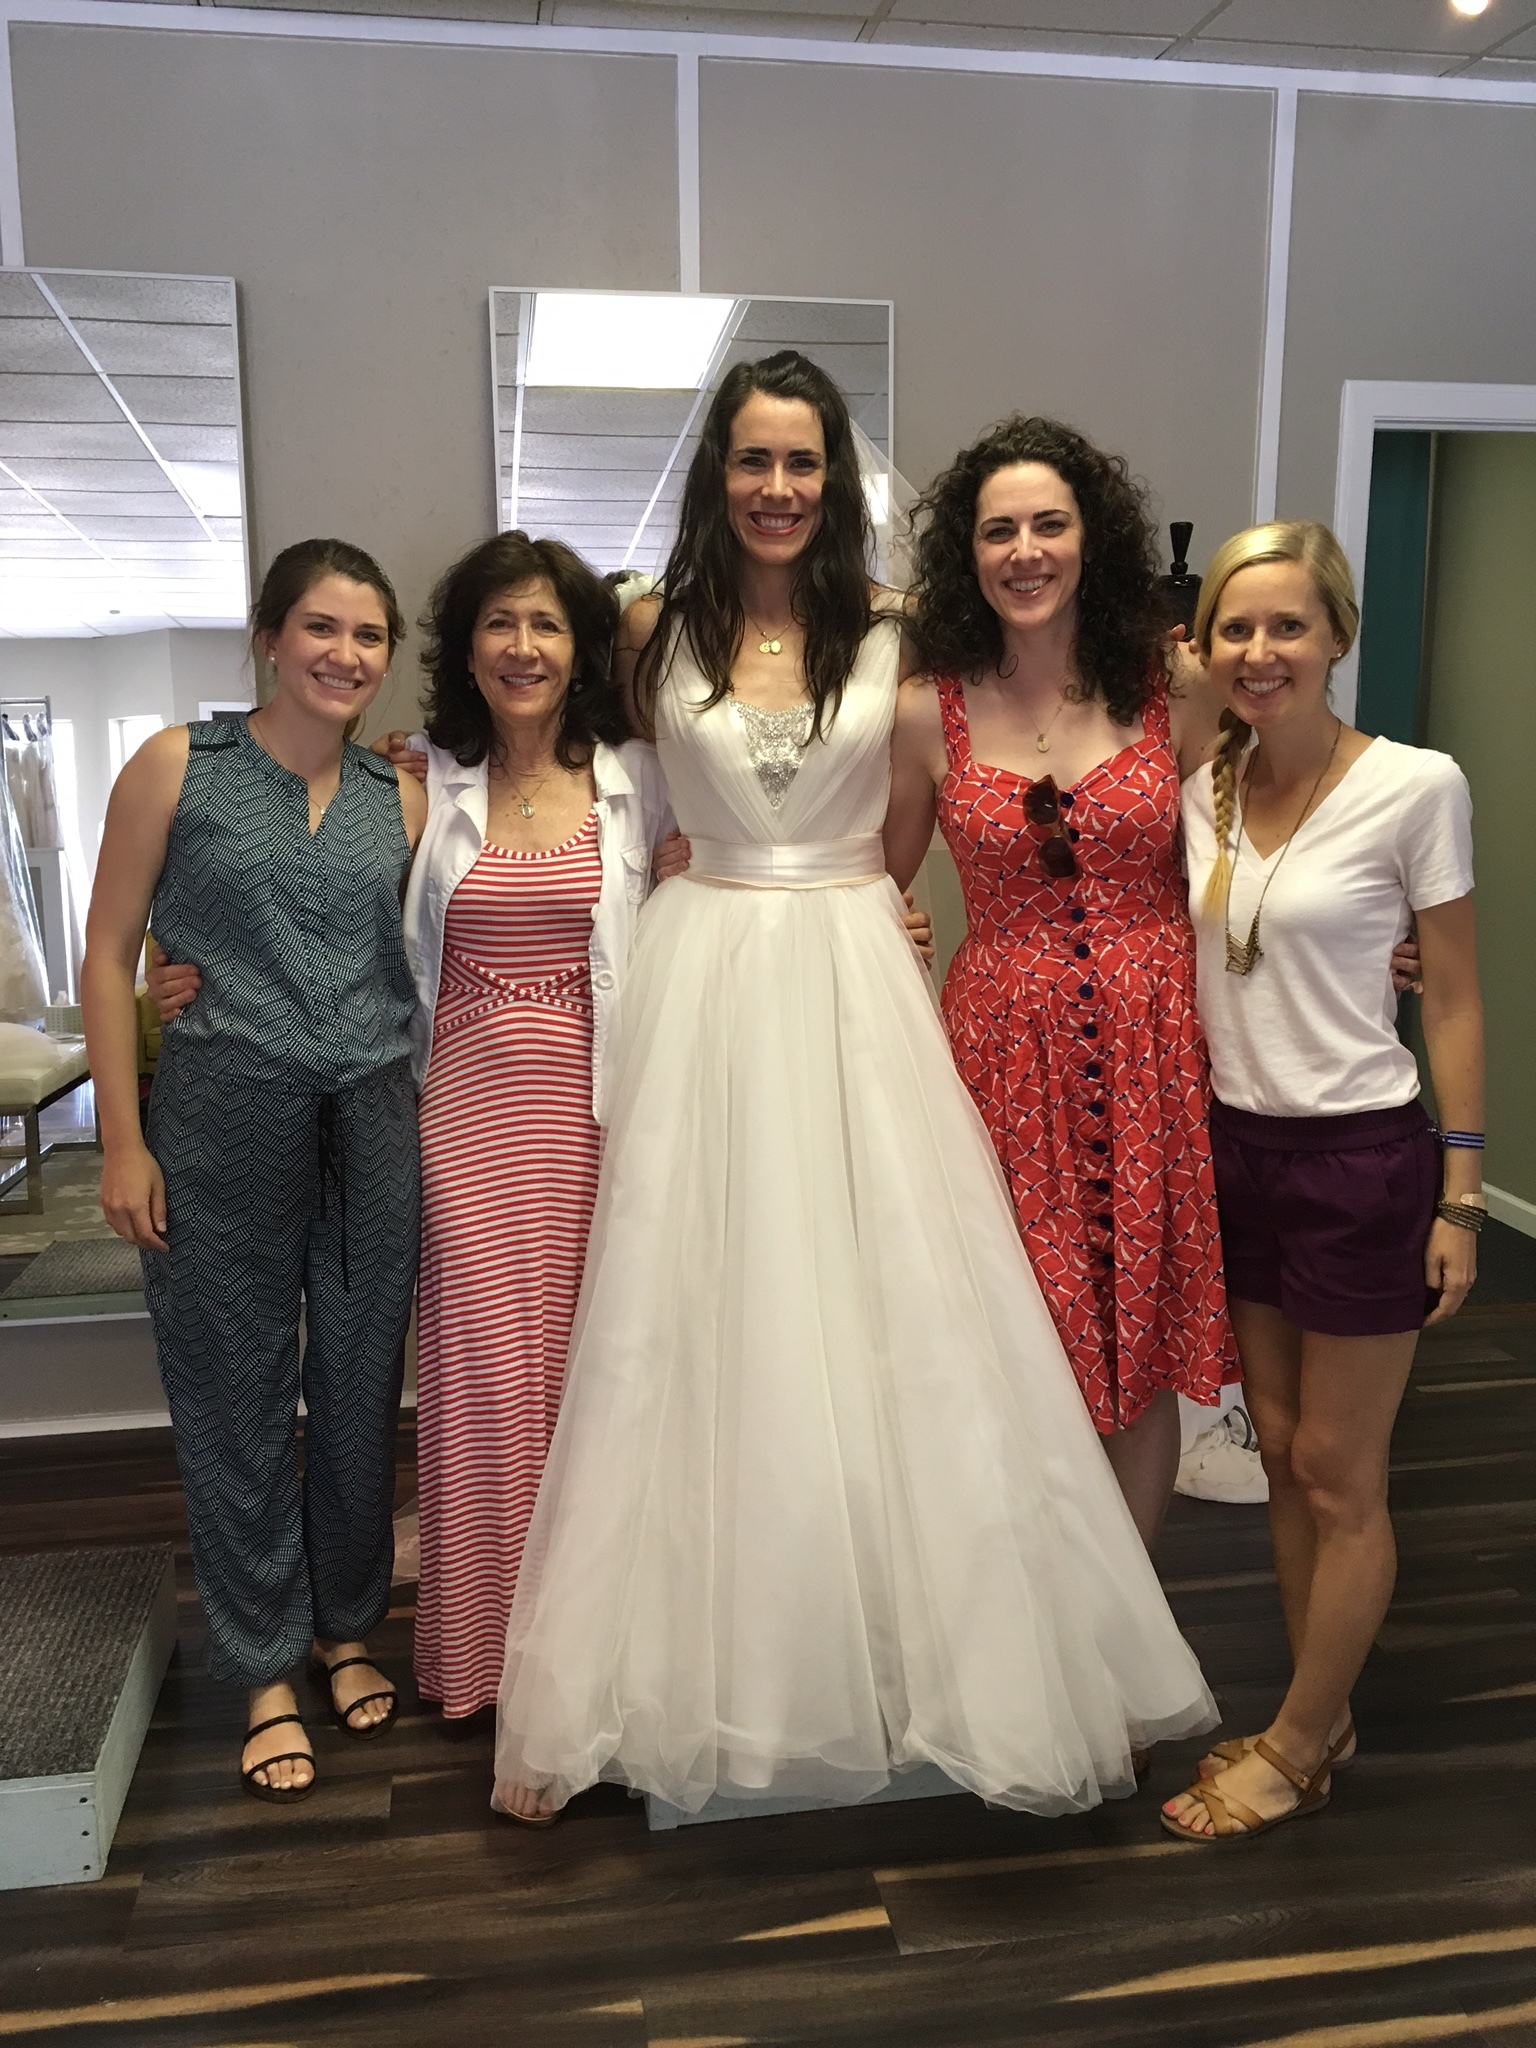 3 out of 4 of my bridesmaids and my mom were able to come with me. Such a fun experience!